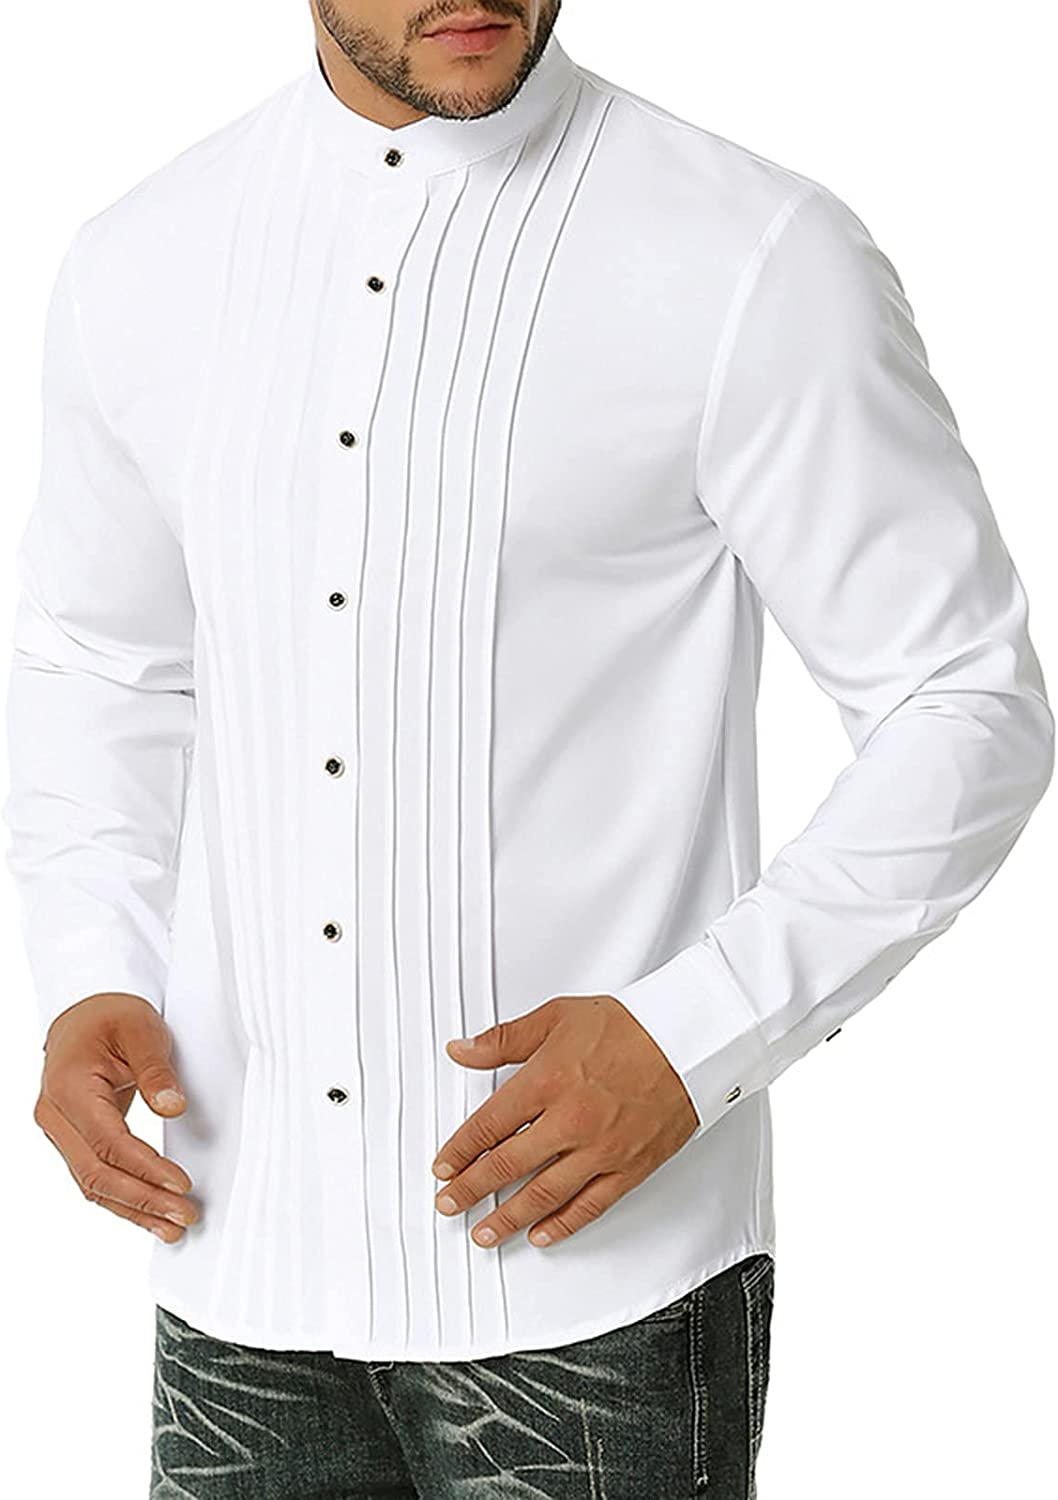 JOAU Men's Business Dress Shirt Solid sold out Pleated Max 65% OFF Color Long-Sleeved